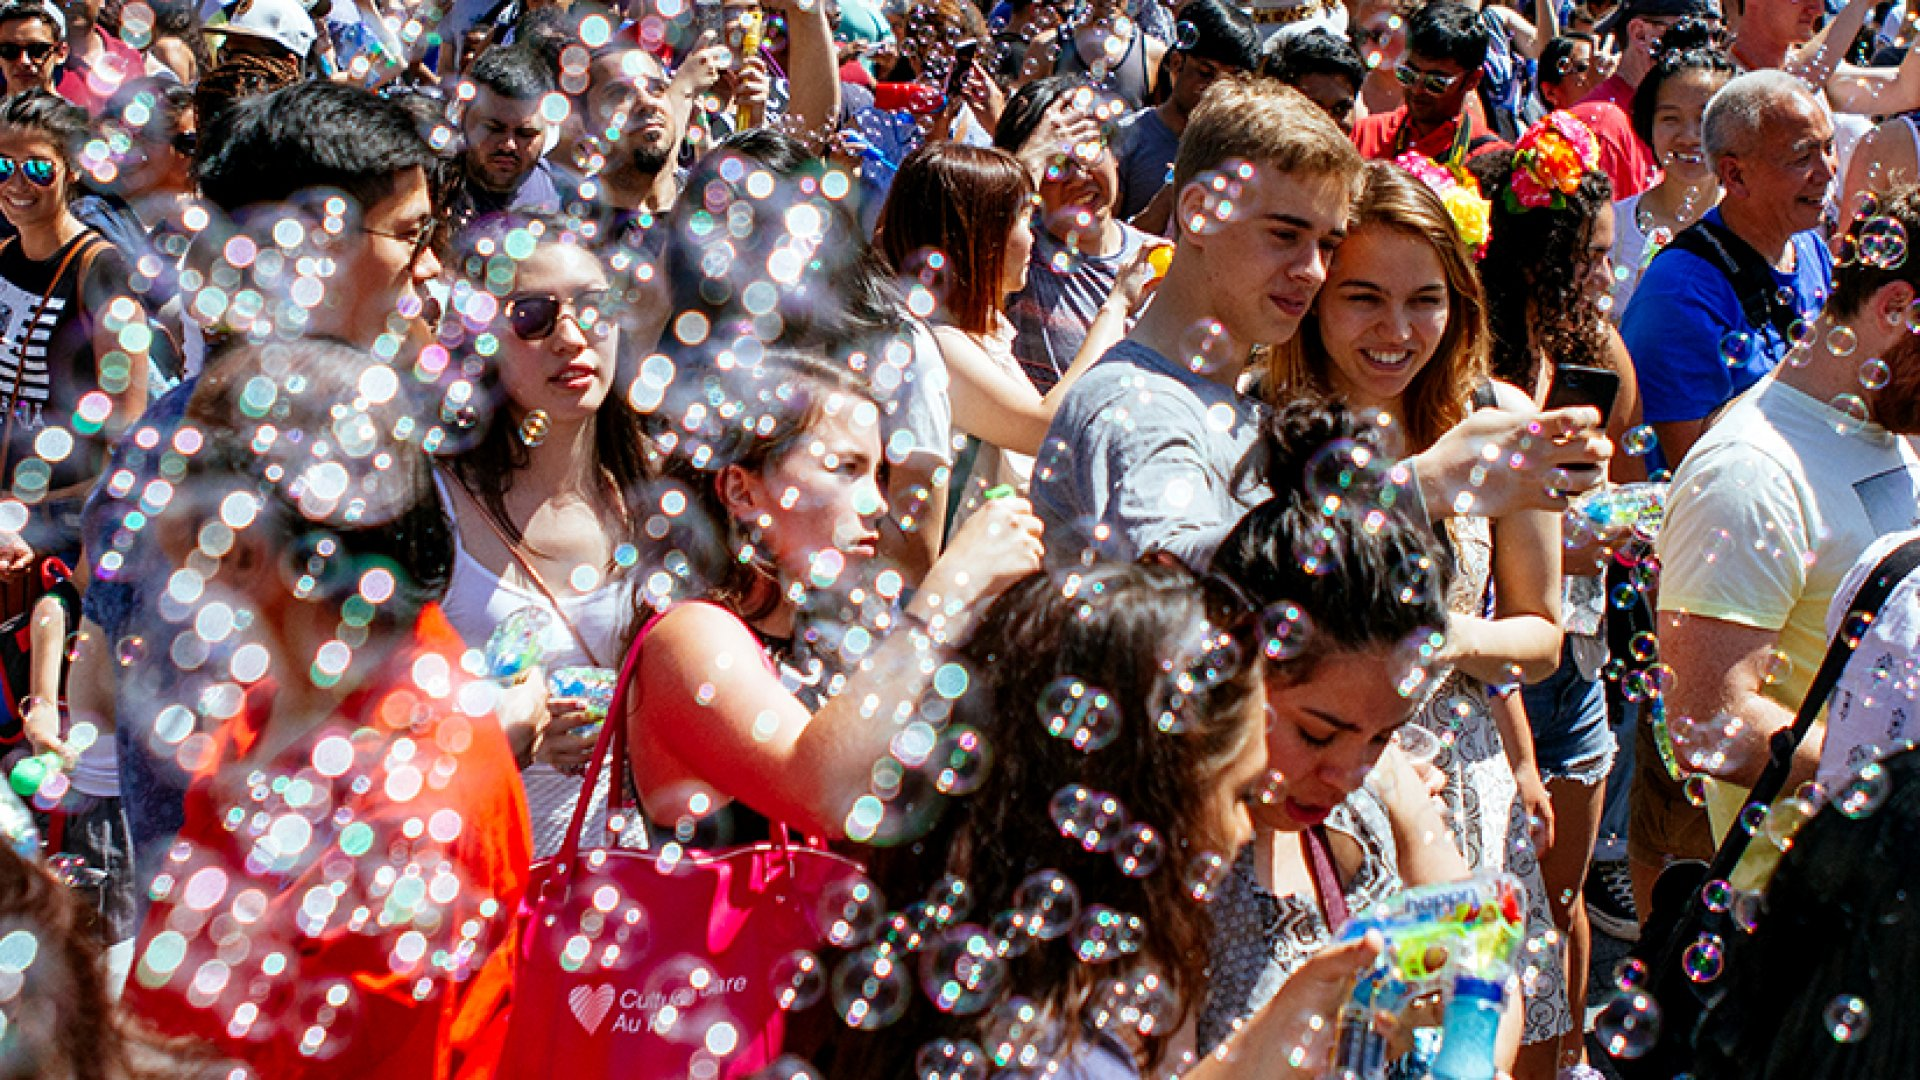 """Thousands gathered at the Happn-sponsored """"Bubble Battle"""" in New York City's Union Square on Saturday."""